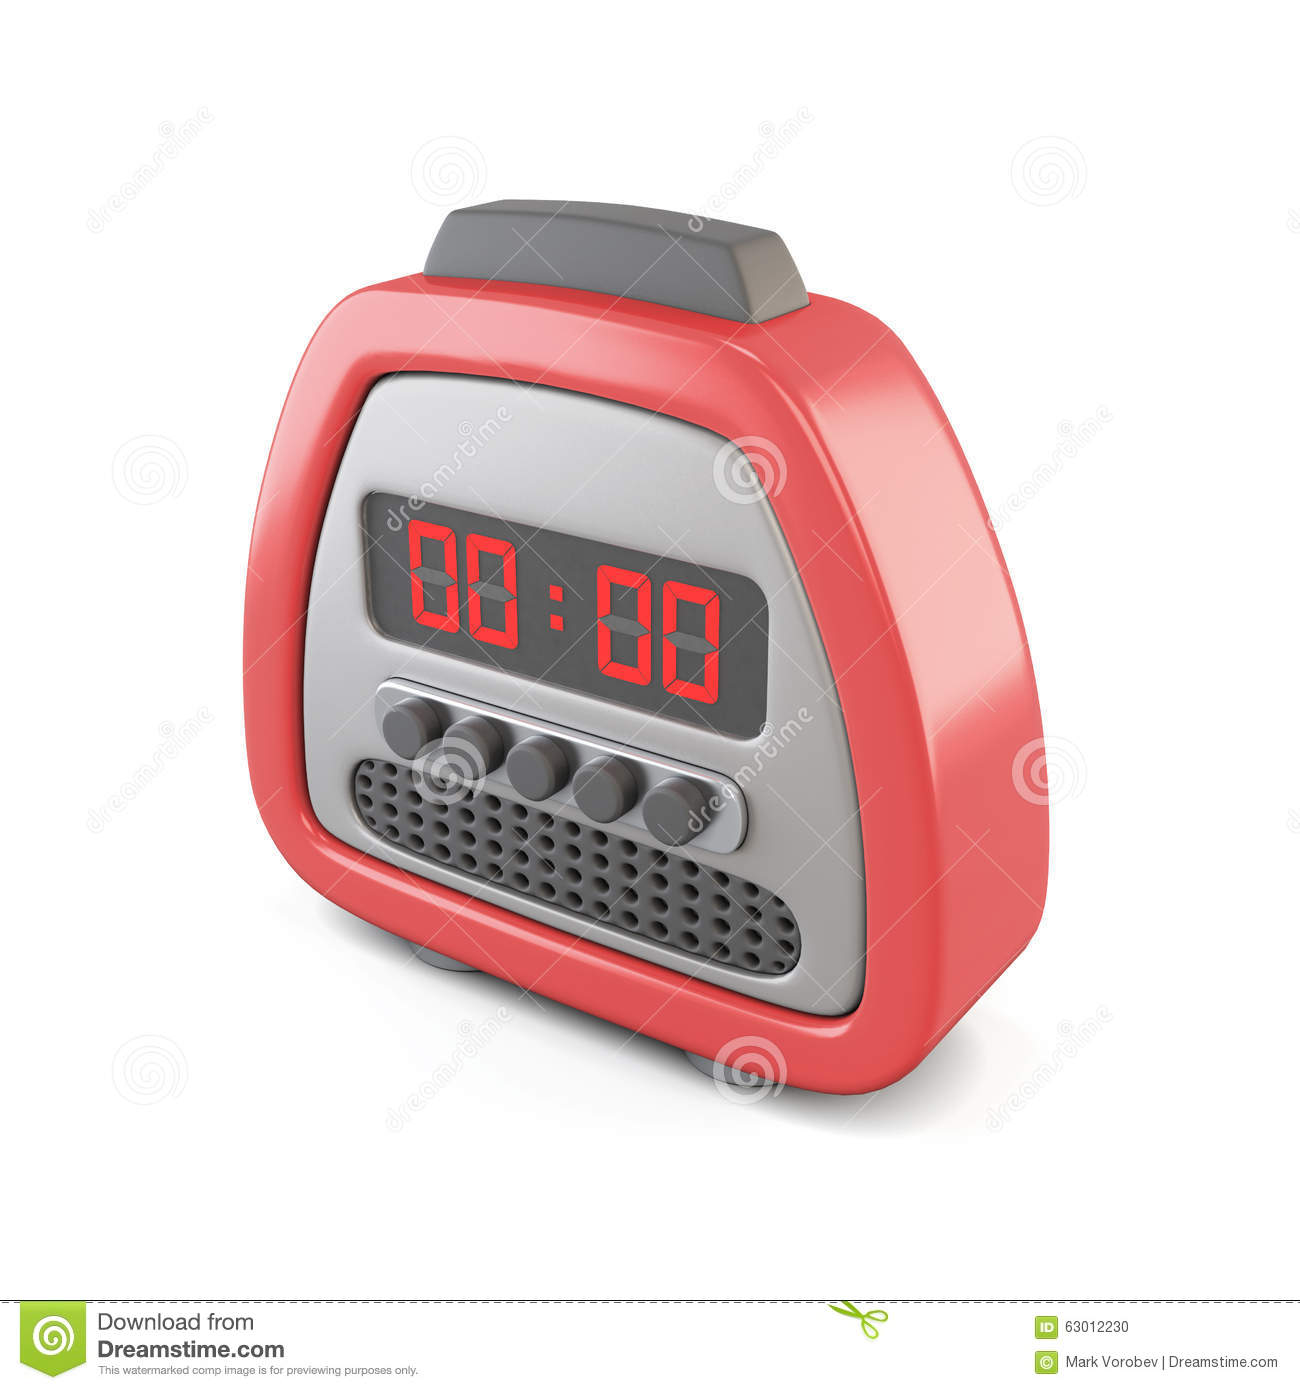 Red Digital Alarm Clock  3d Illustration  Stock Illustration